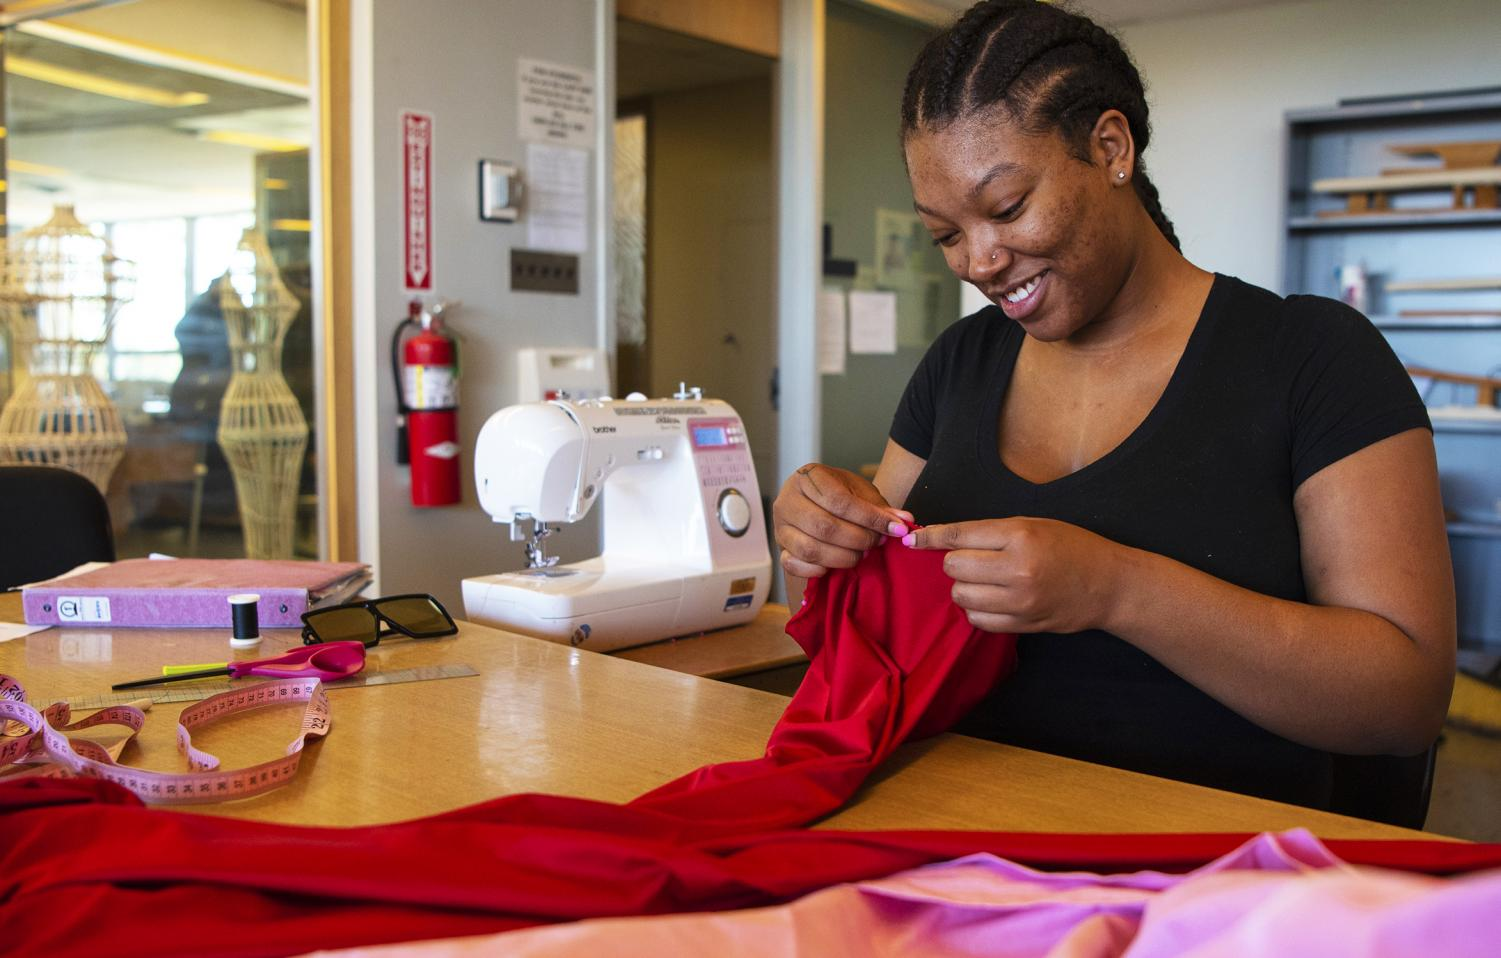 Terrian Brownlow, a senior majoring in Fashion Design, works on her fashion project on Tuesday, April 17, 2019, on the third floor of Quigley Hall.